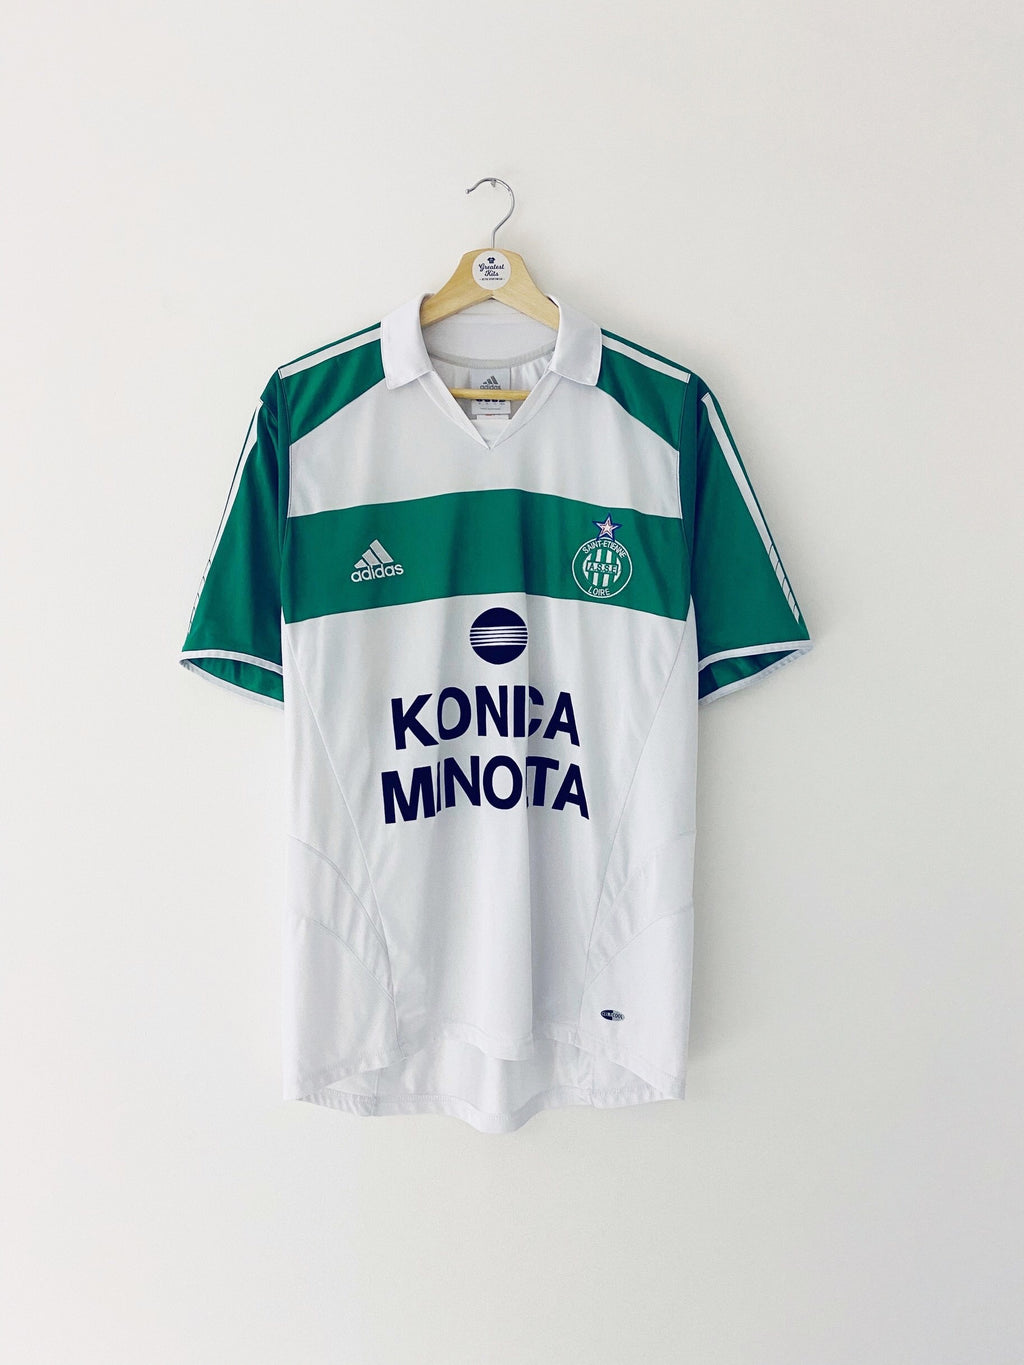 2005/06 Saint Etienne Away Shirt (M) 9/10